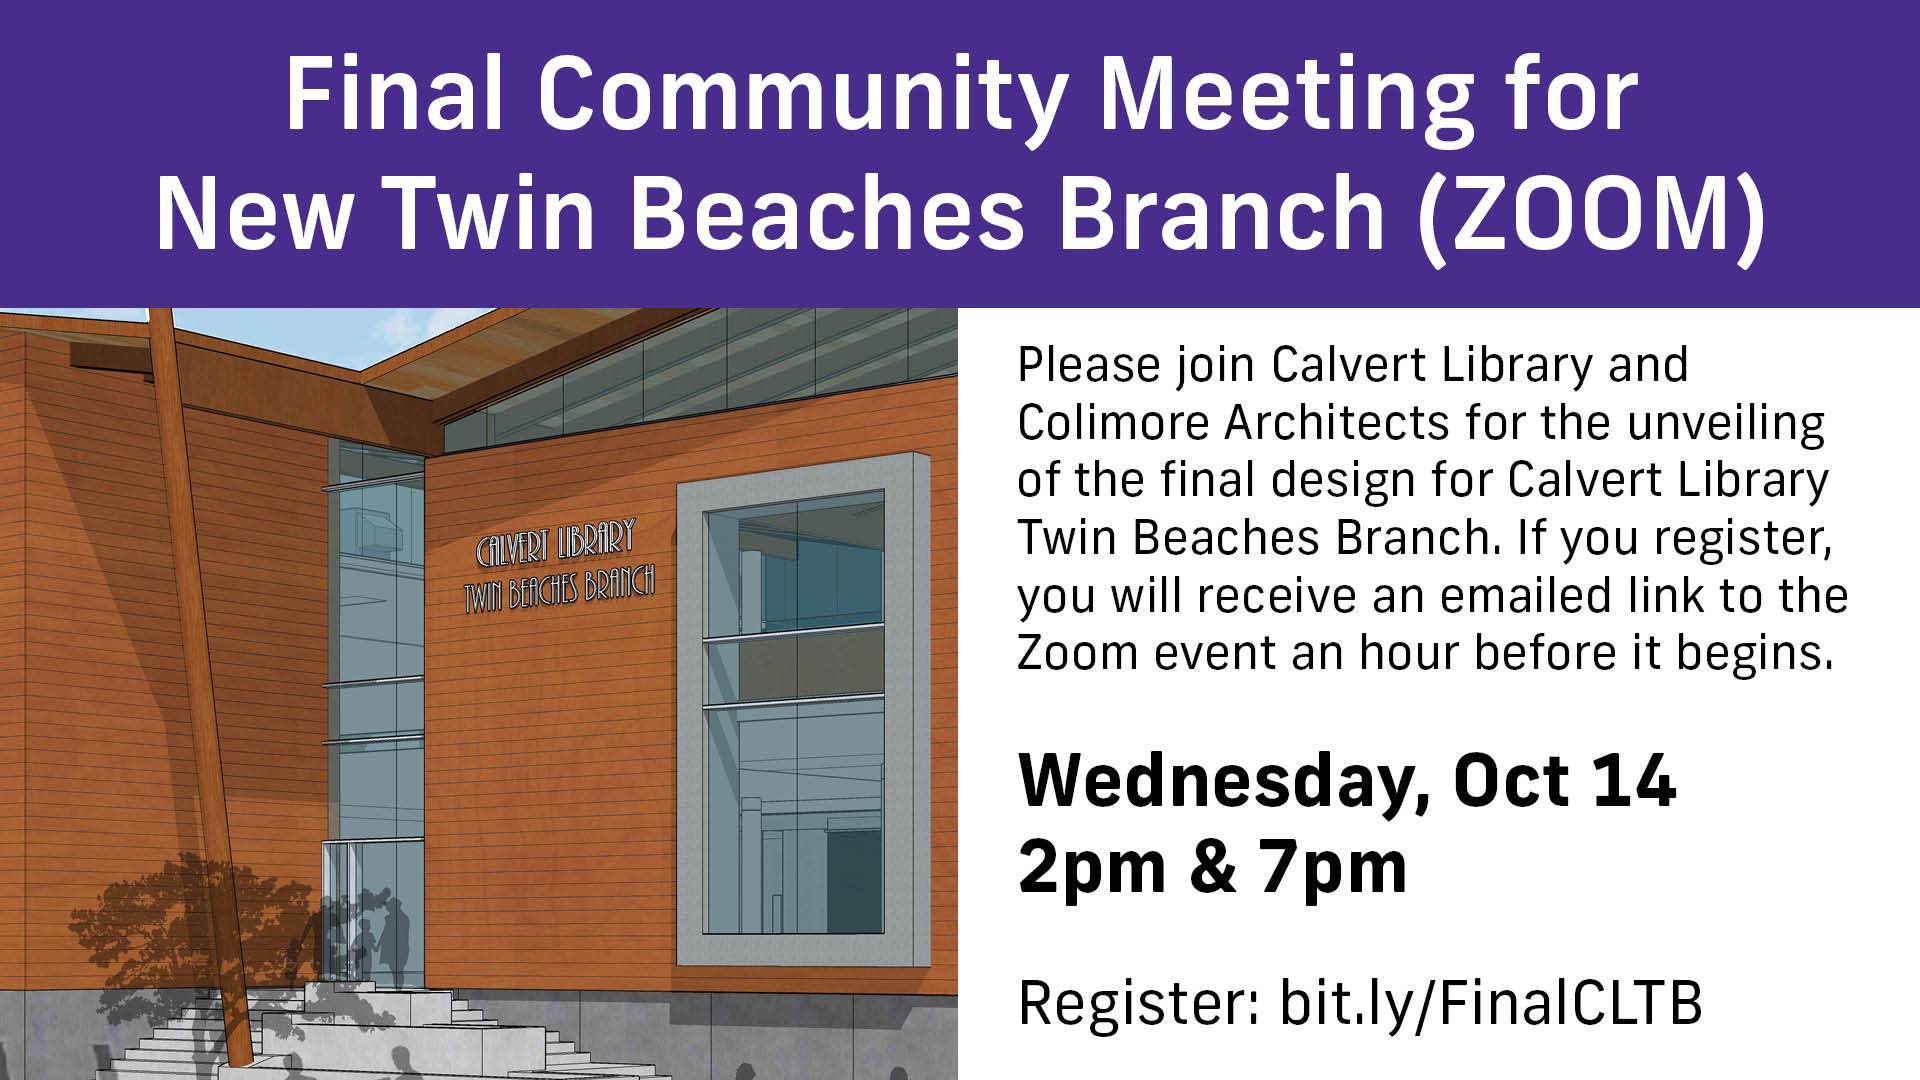 Final Community Meeting for the New Twin Beaches Branch Wednesday, October 14 2 & 7pm register